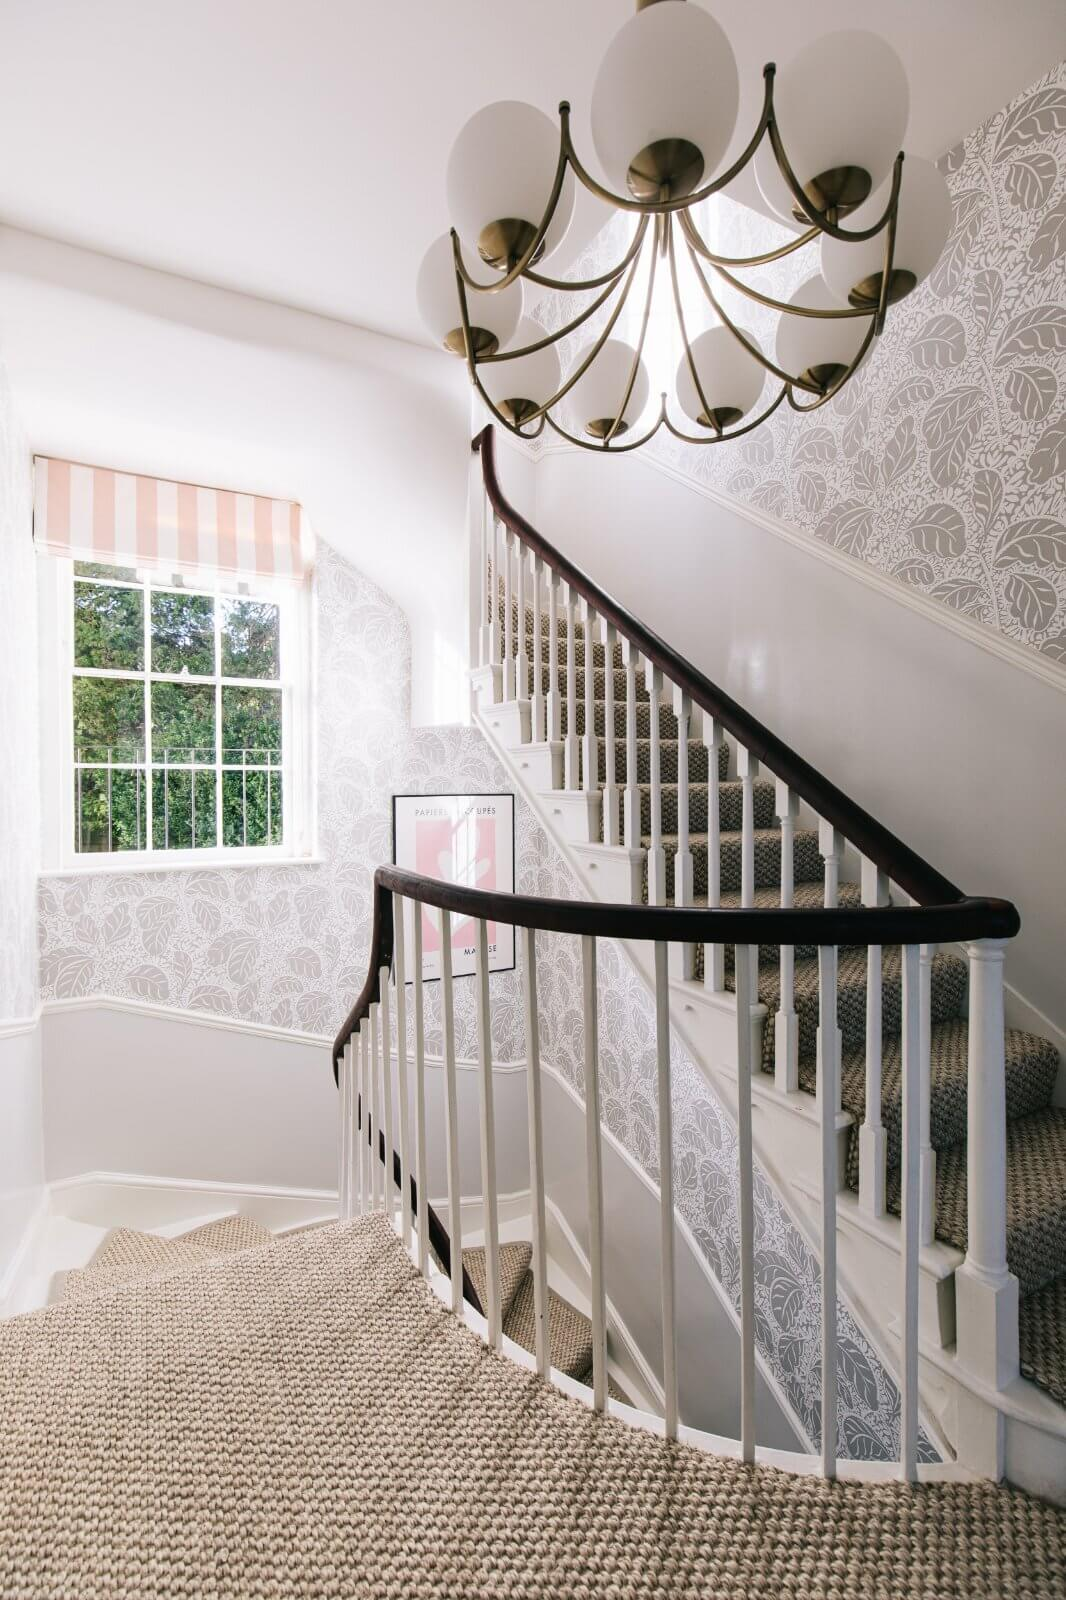 serene-townhouse-bath-staircase-gainsborough-nordroom